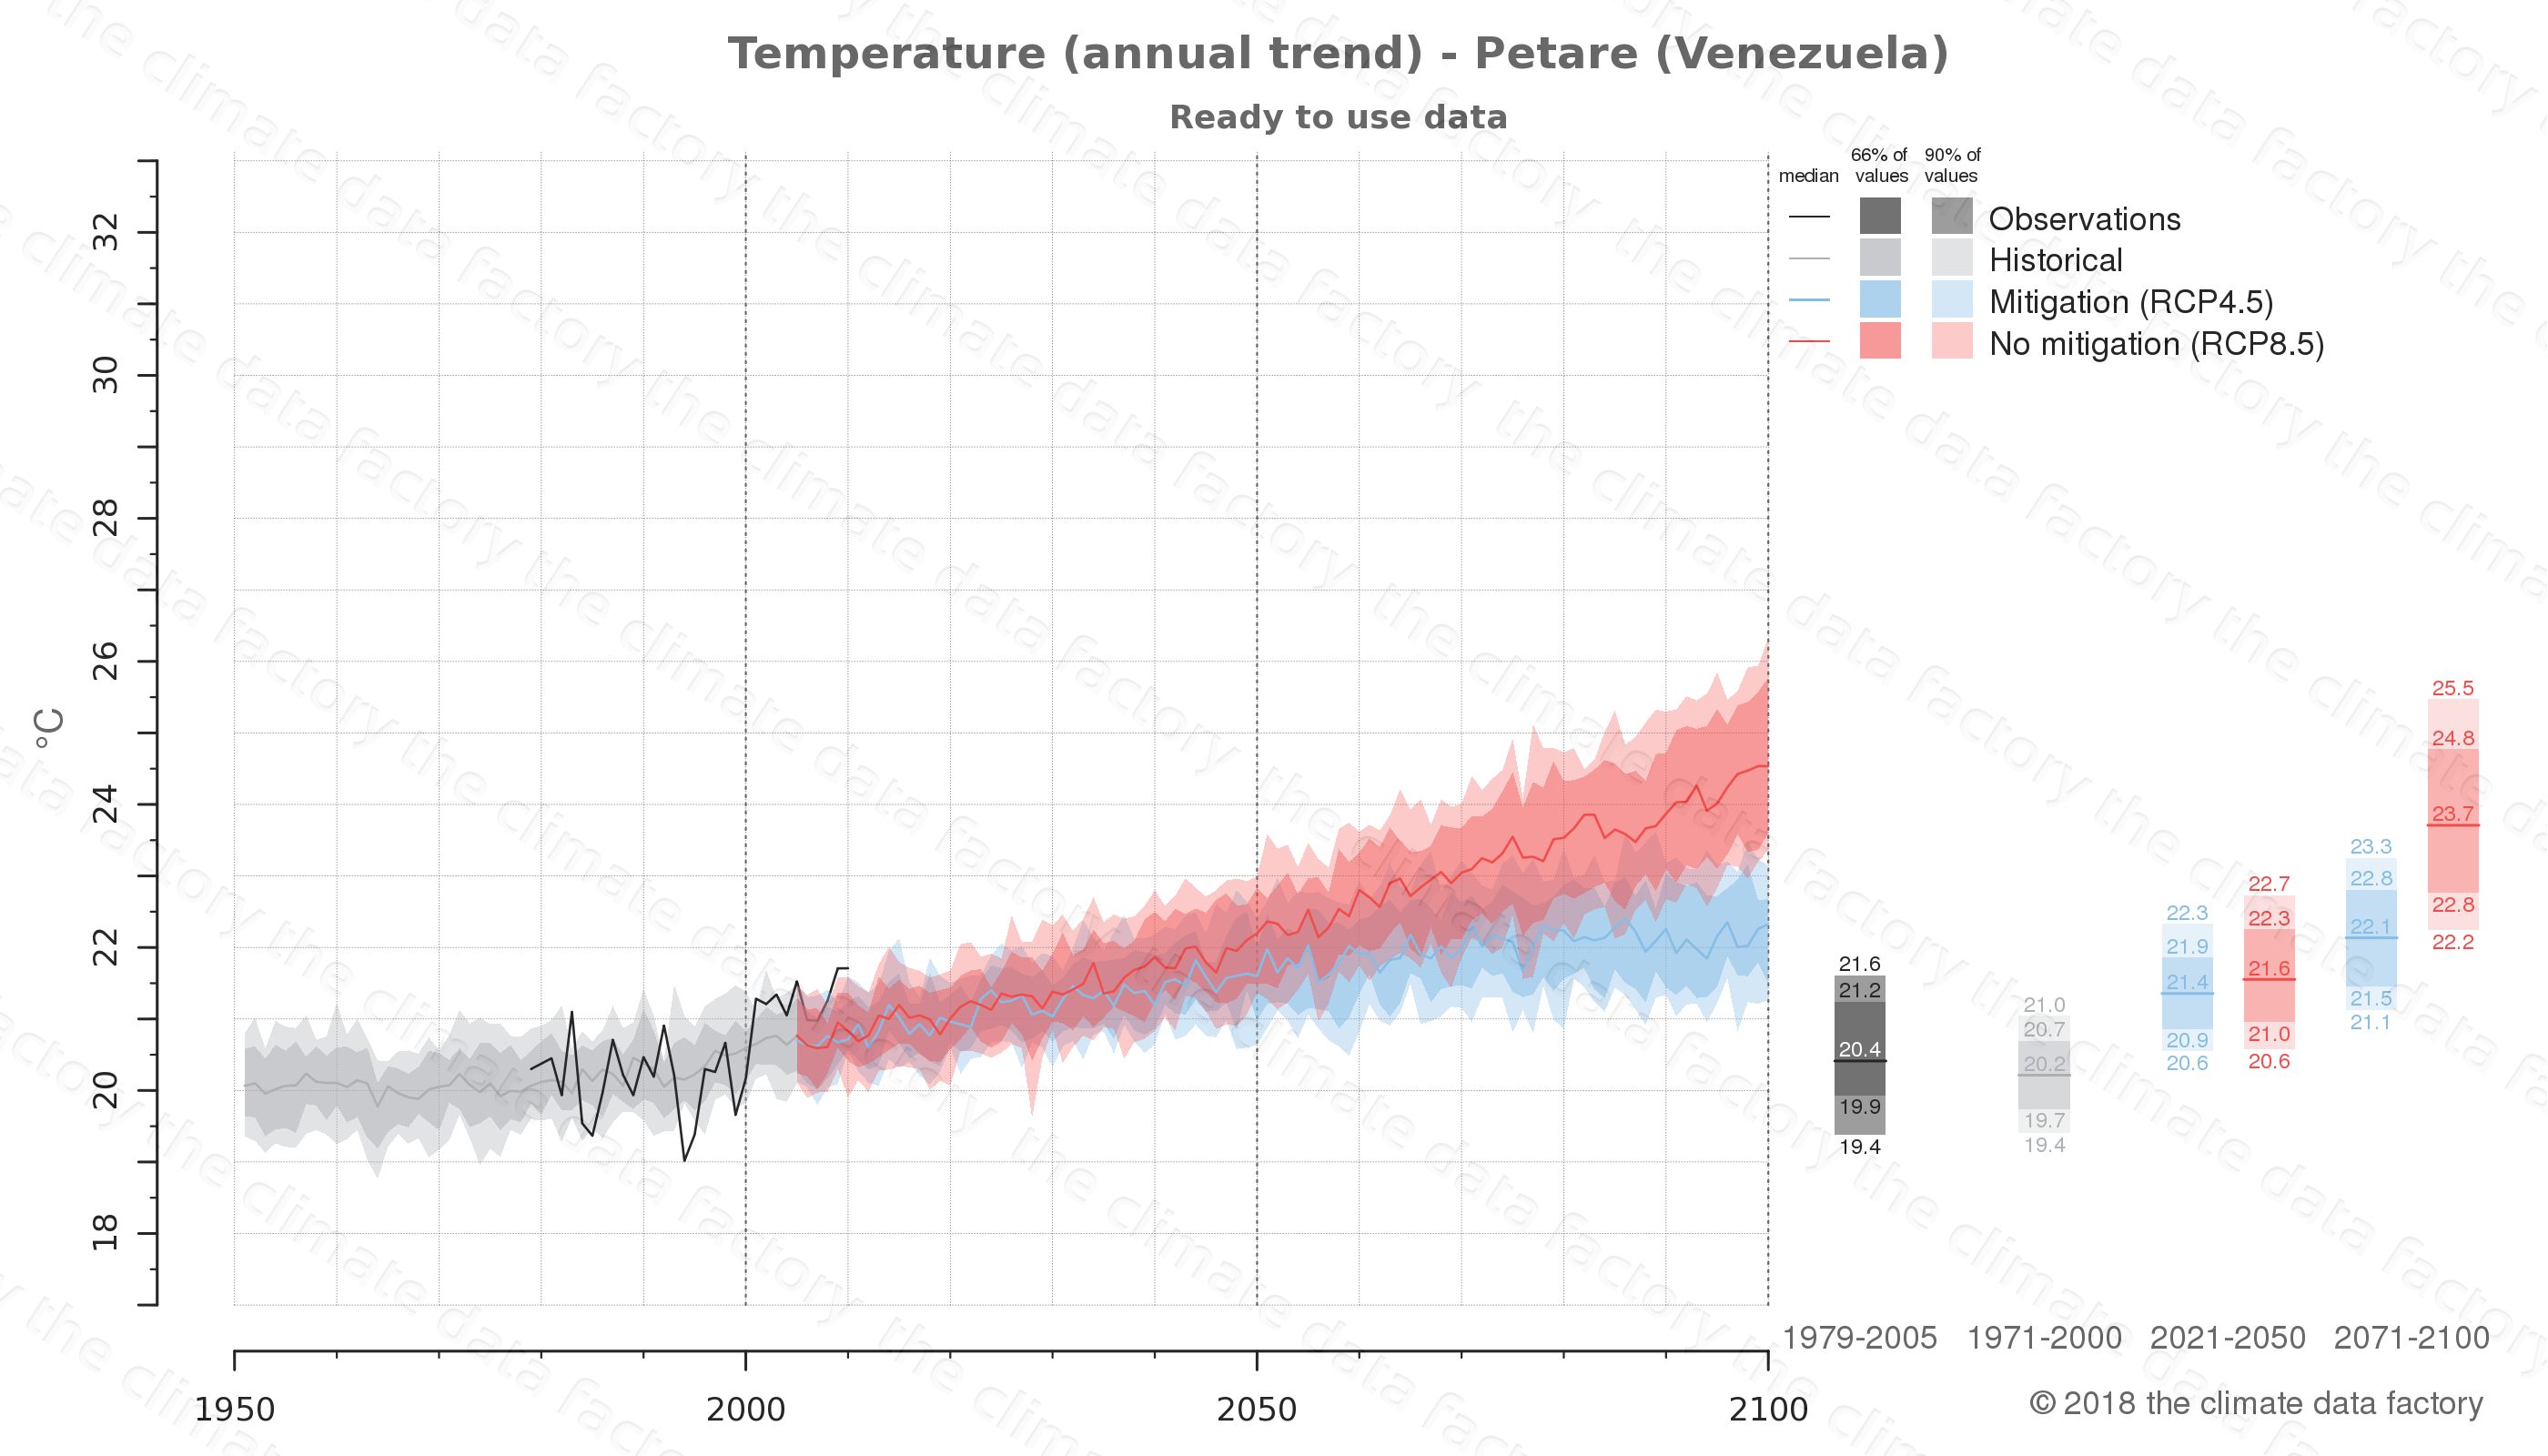 climate change data policy adaptation climate graph city data temperature petare venezuela